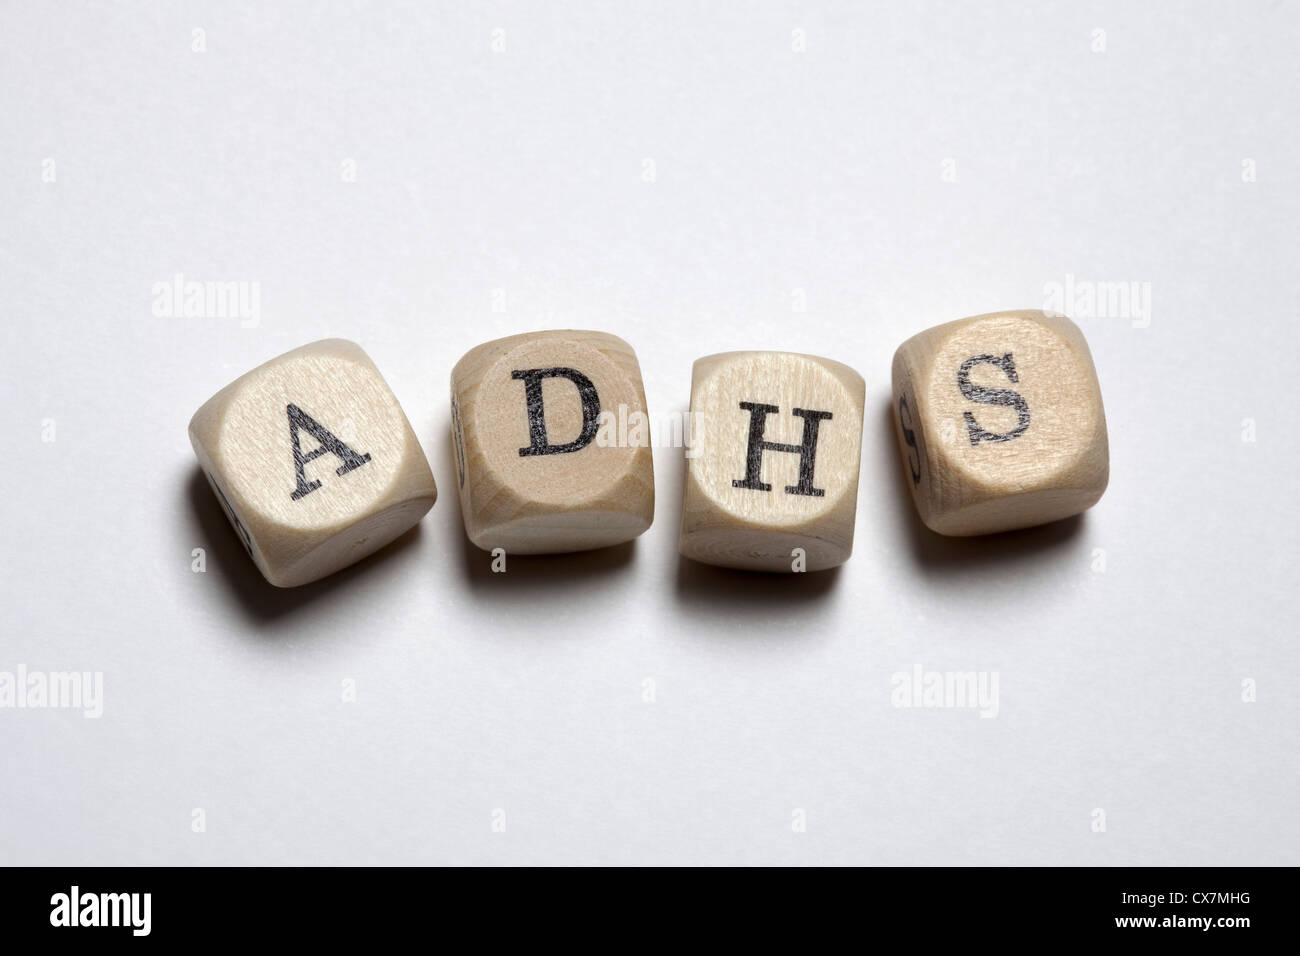 Lettered cubes spelling ADHS, the German acronym for Attention Deficit Hyperactivity Disorder - Stock Image